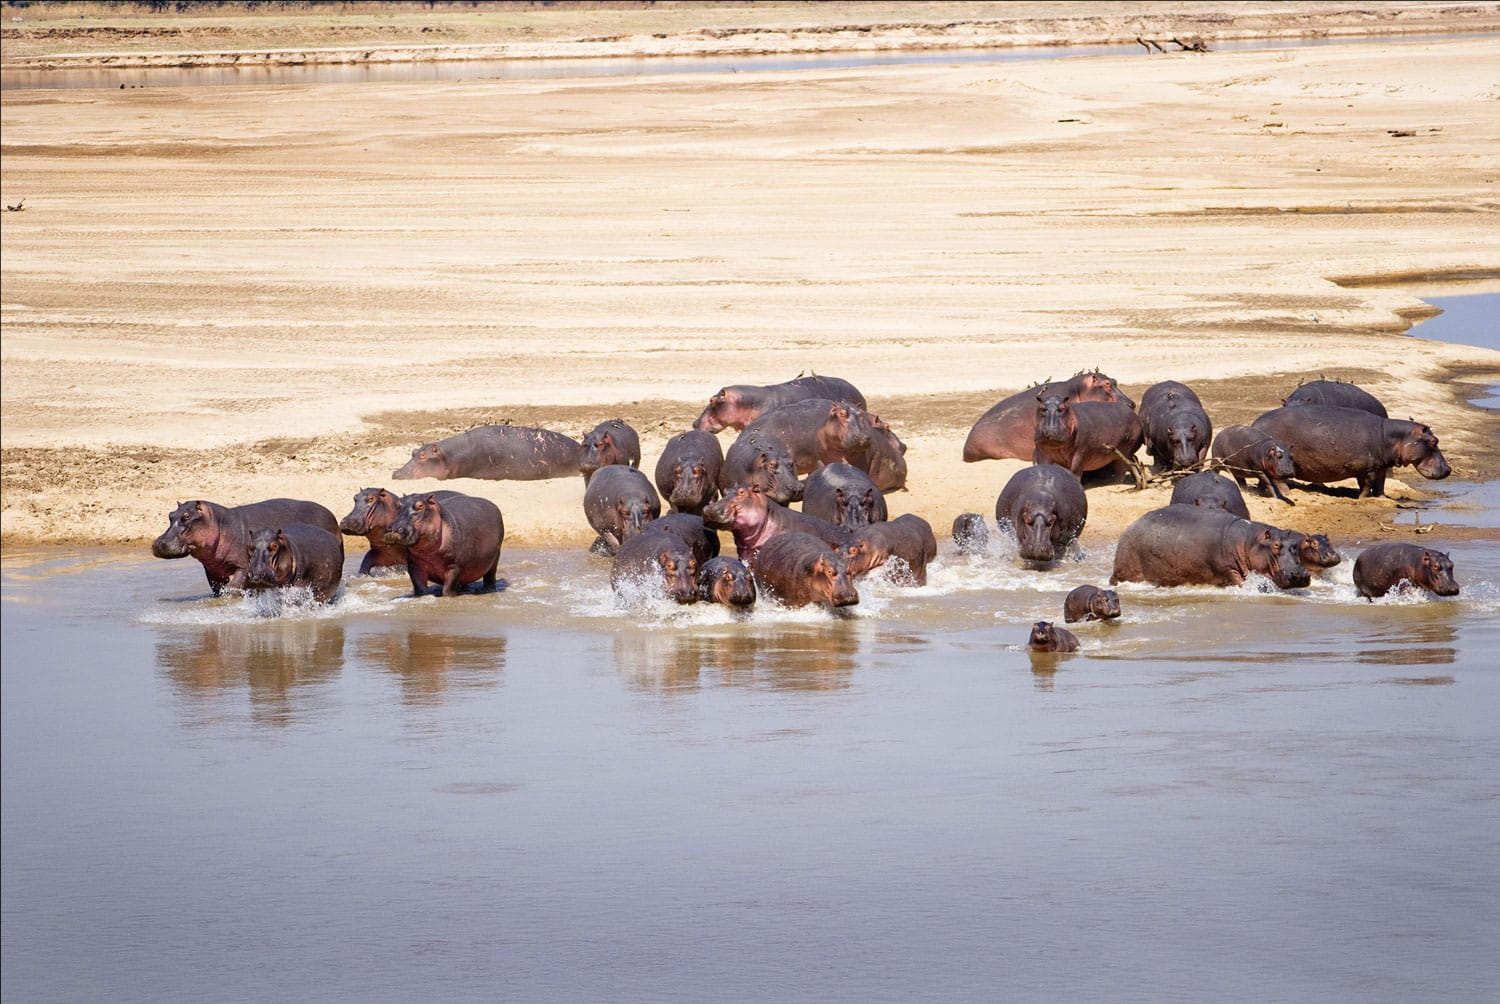 Hippo Family running into the water of the Luangwa River, South Luangwa National Park, Zambia, Africa